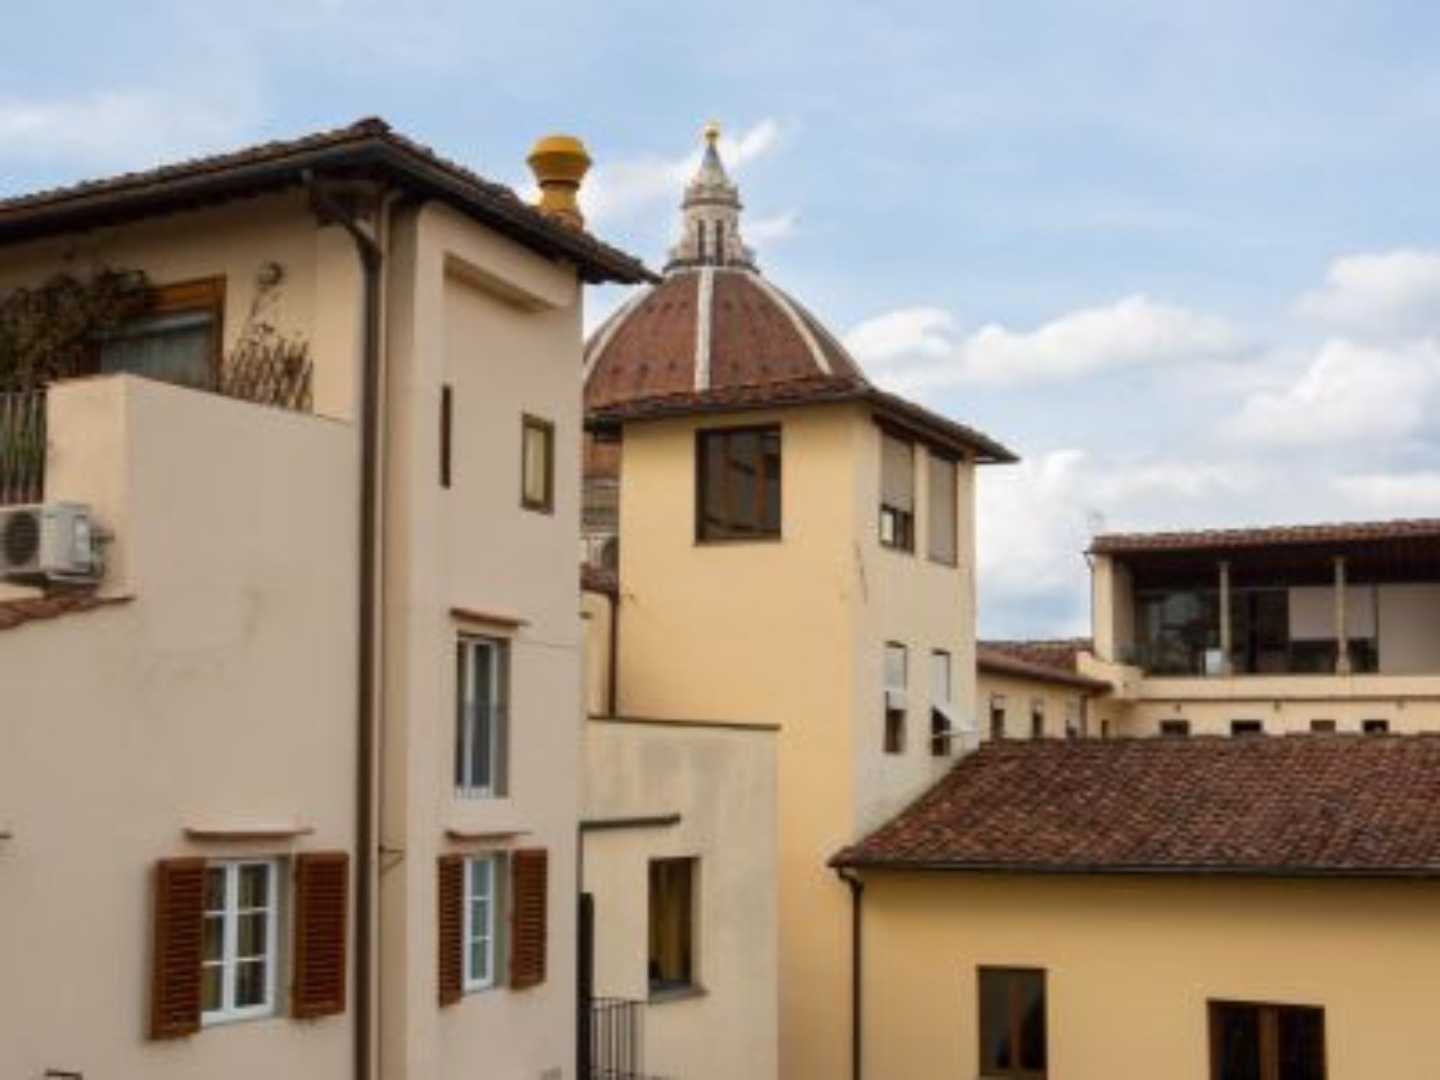 A small house in front of a building at B&B Il Bargello.